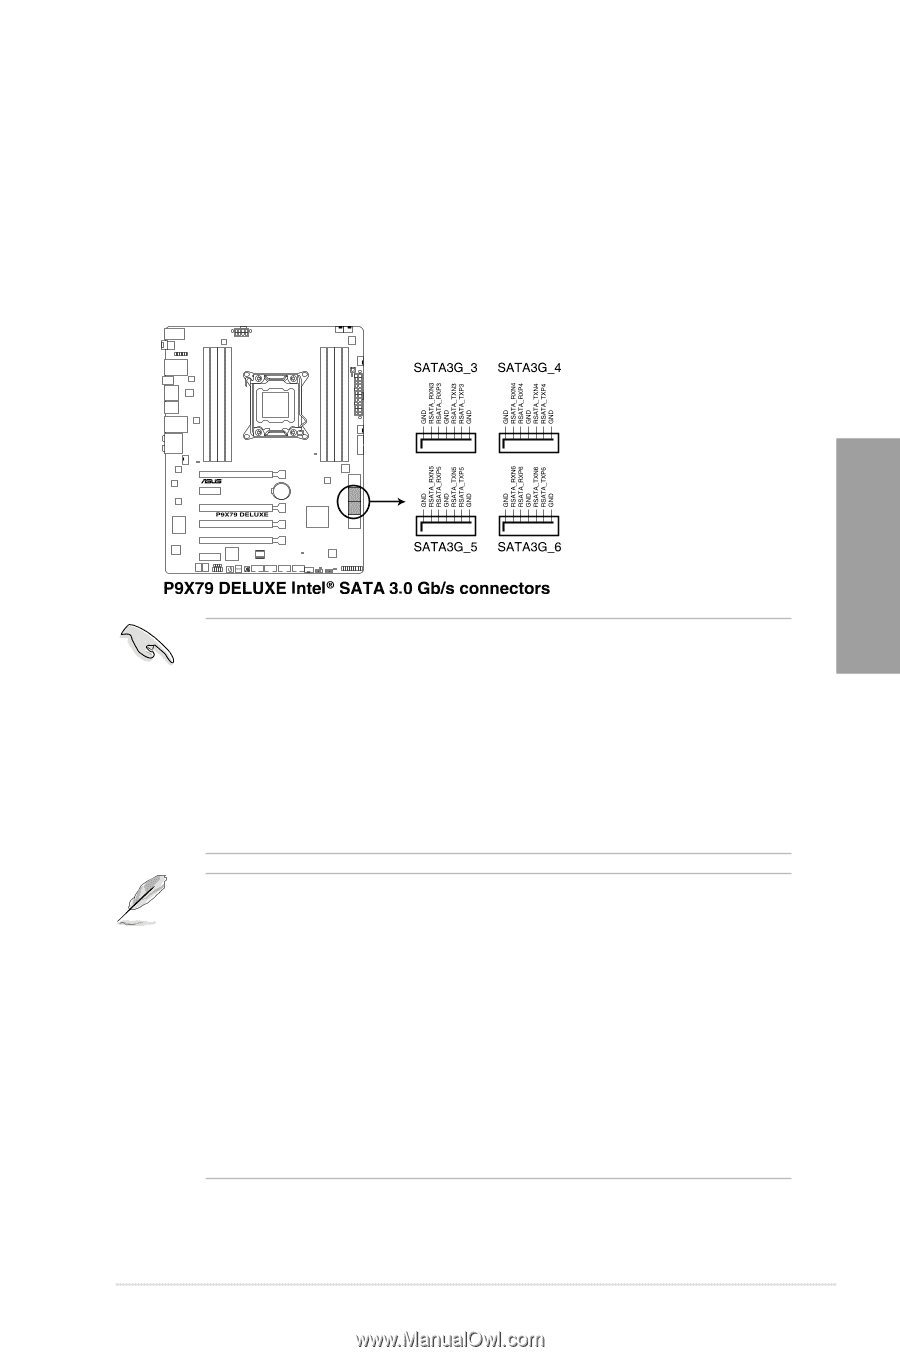 Asus P9X79 DELUXE | User Manual - Page 50